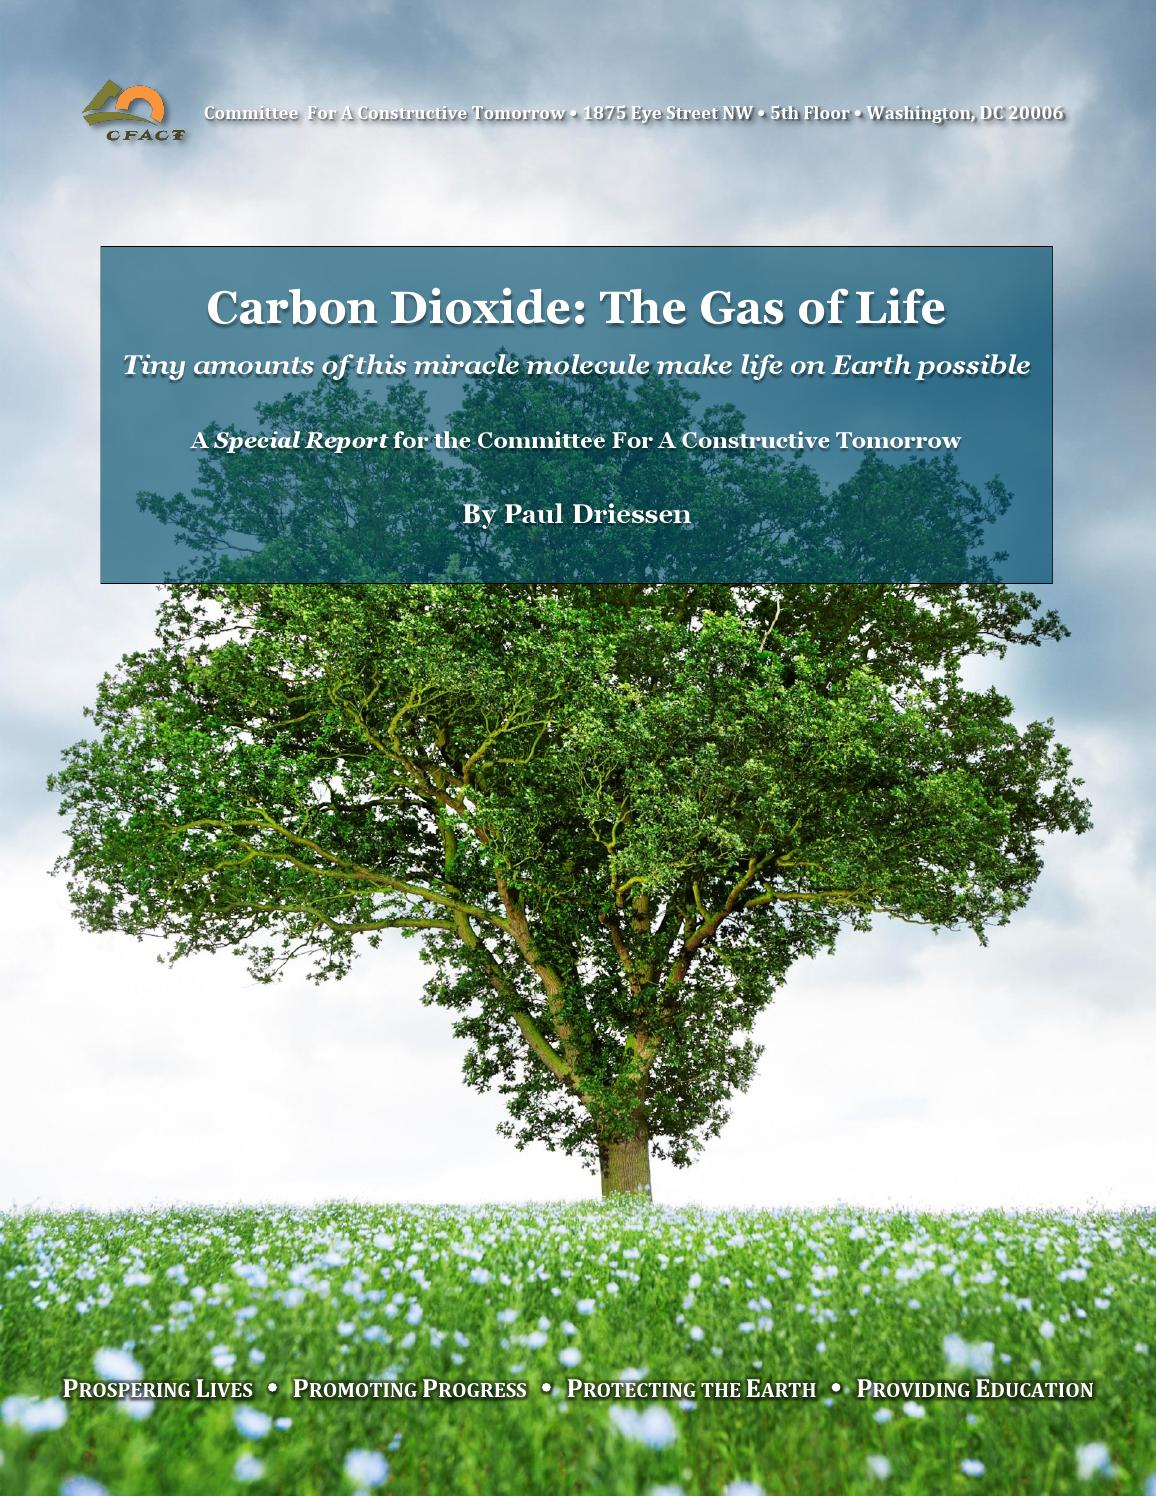 Carbon Dioxide The Gas Of Life Paul Driessen By John A